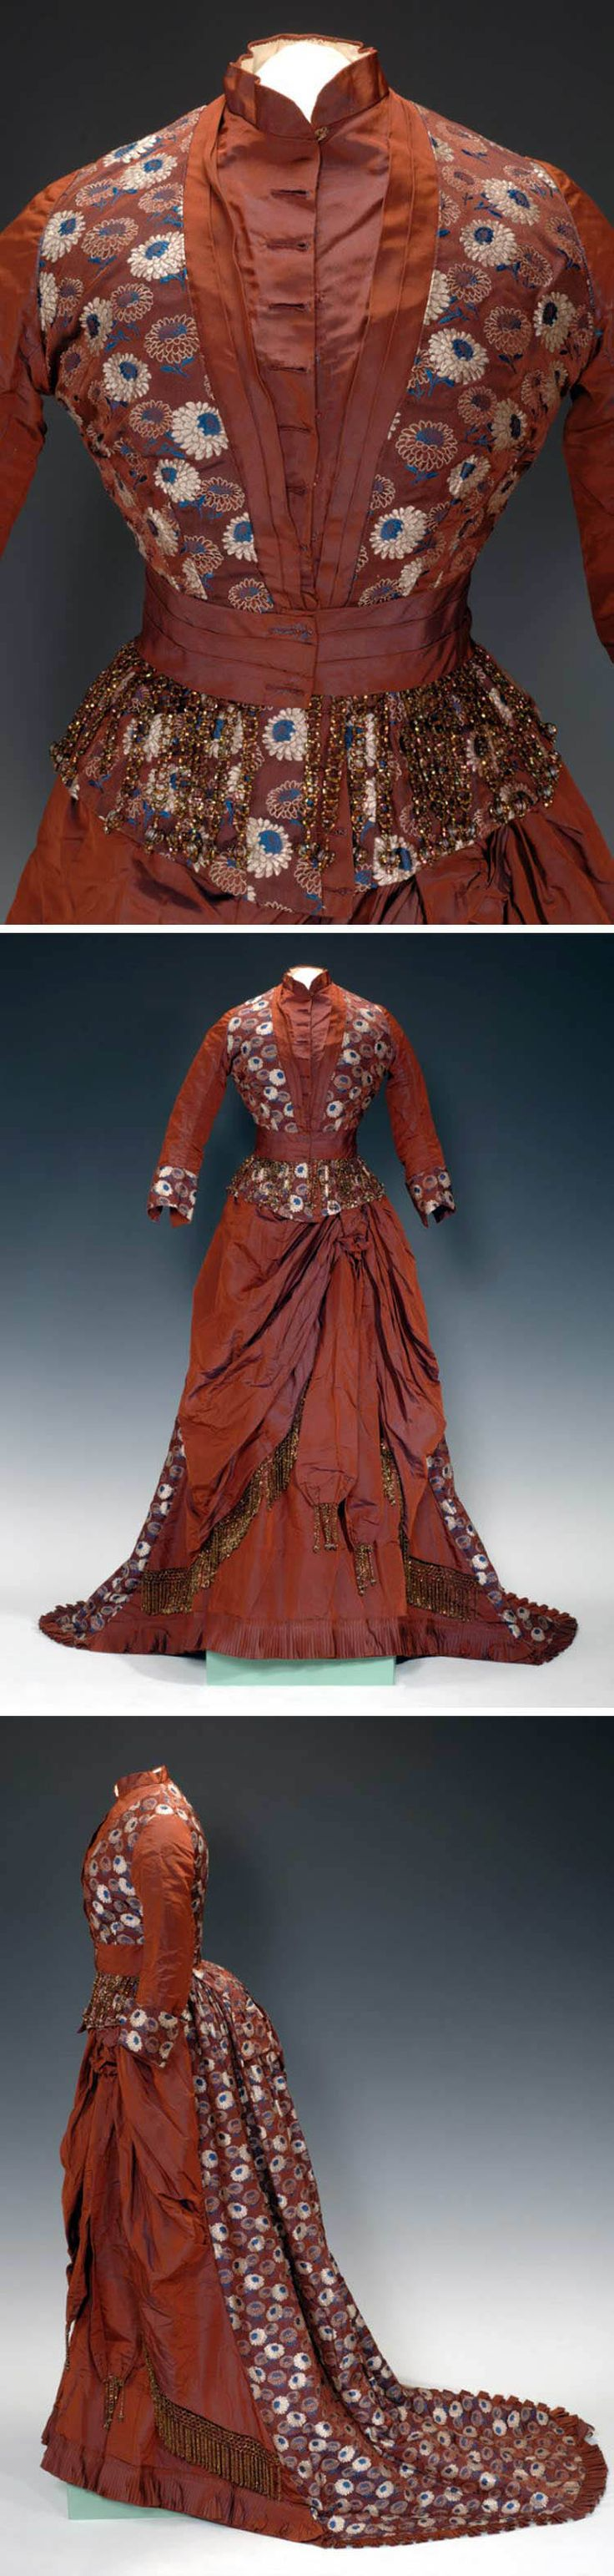 Dress, Martha J. de la Mater, USA, 1876